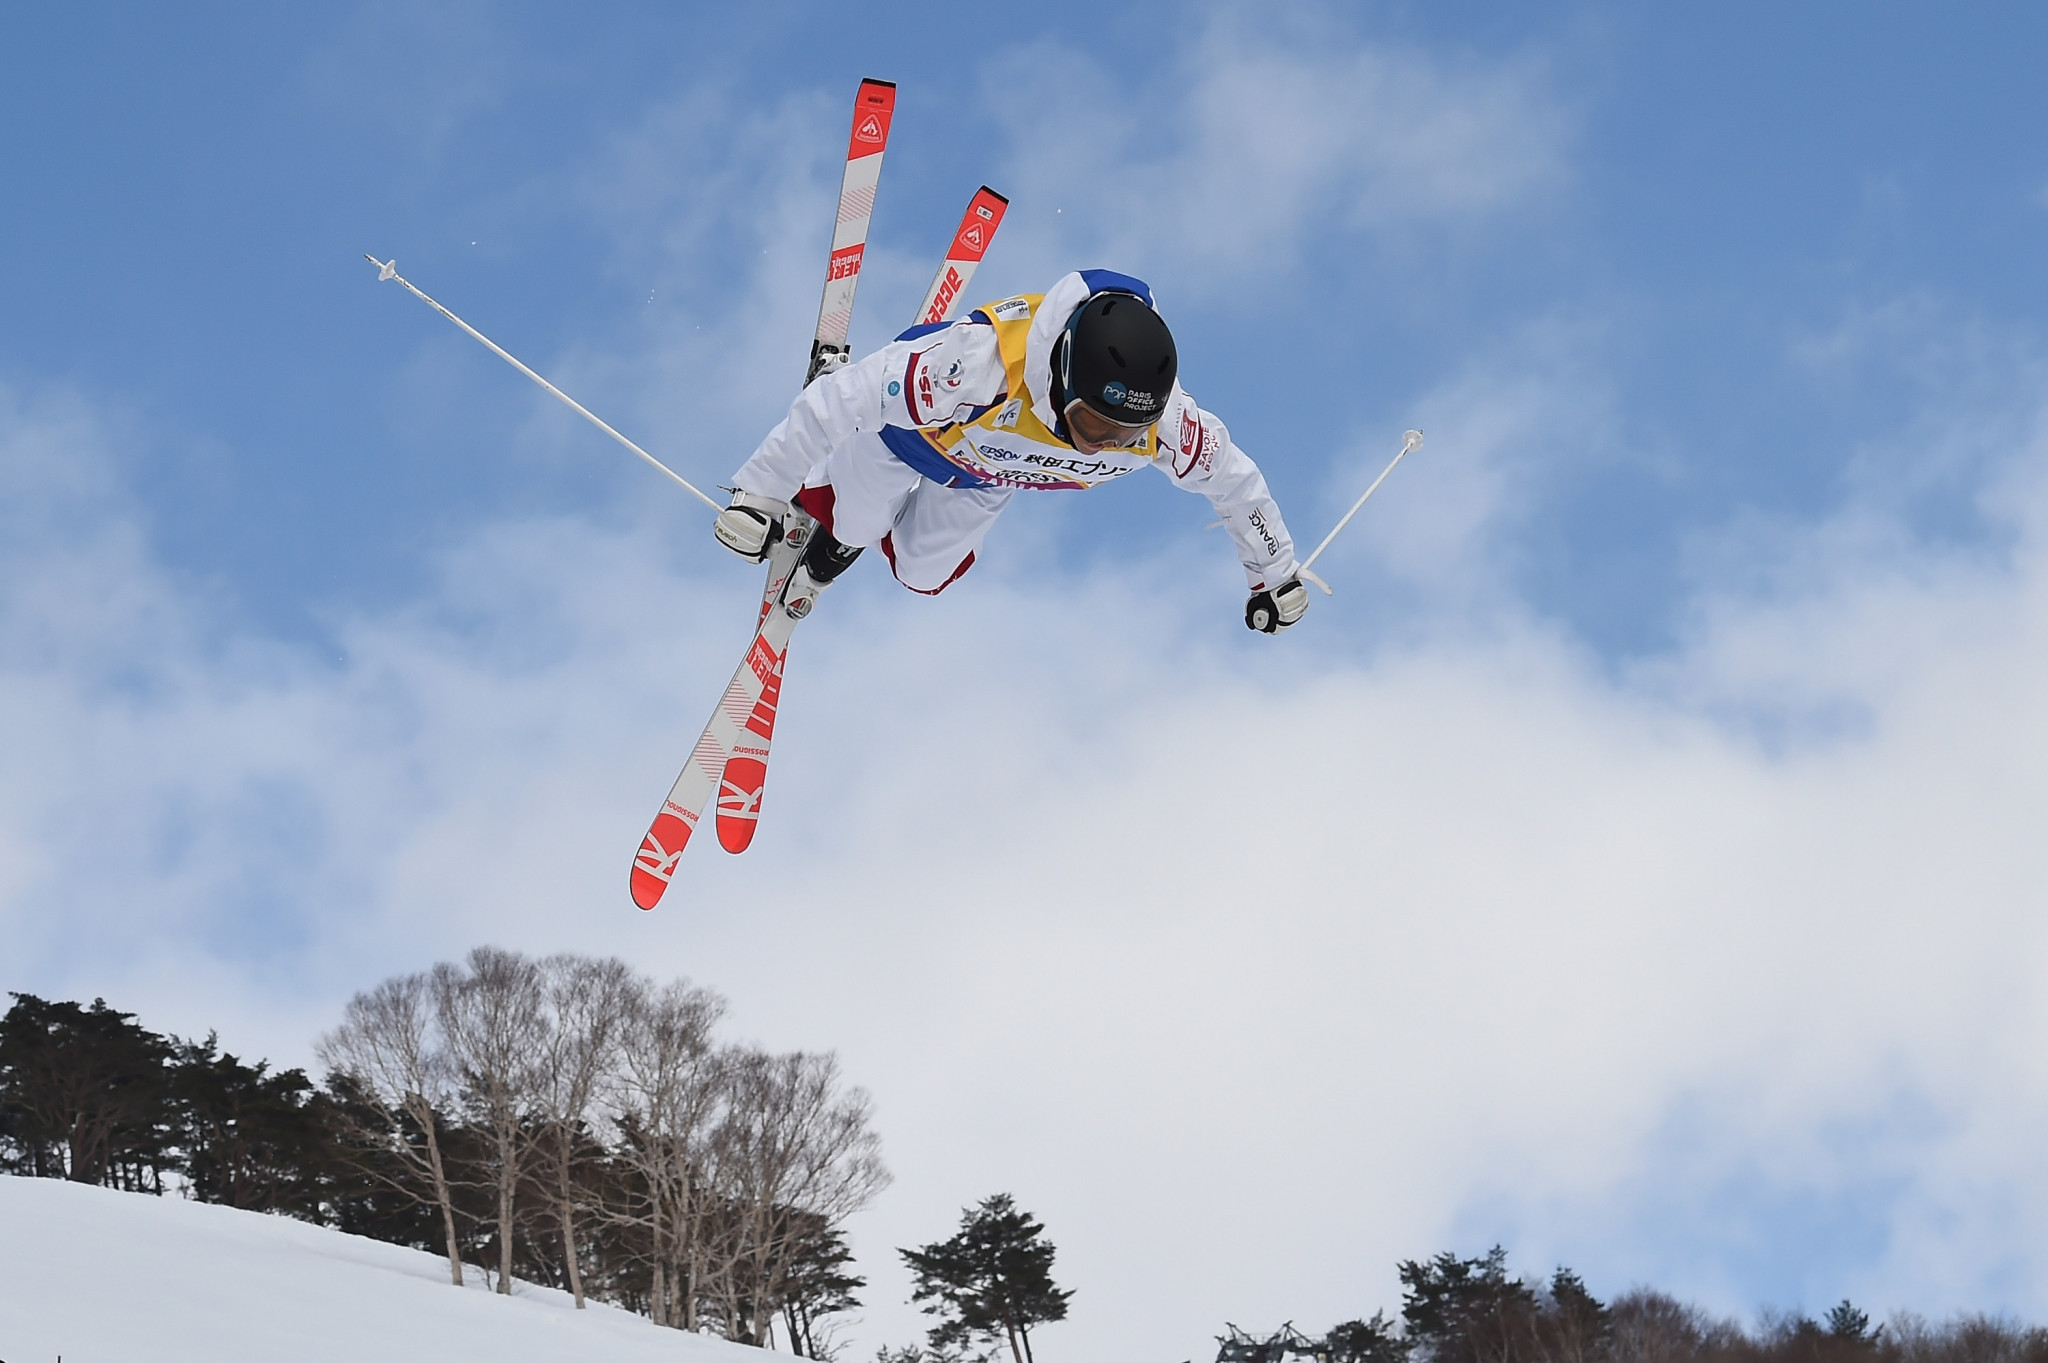 France's Perrine Laffont will be looking to clinch her second consecutive women's moguls overall title when the discipline's FIS World Cup season reaches its conclusion at the Shymbulak Mountain Resort in Kazakhstan this weekend ©Getty Images